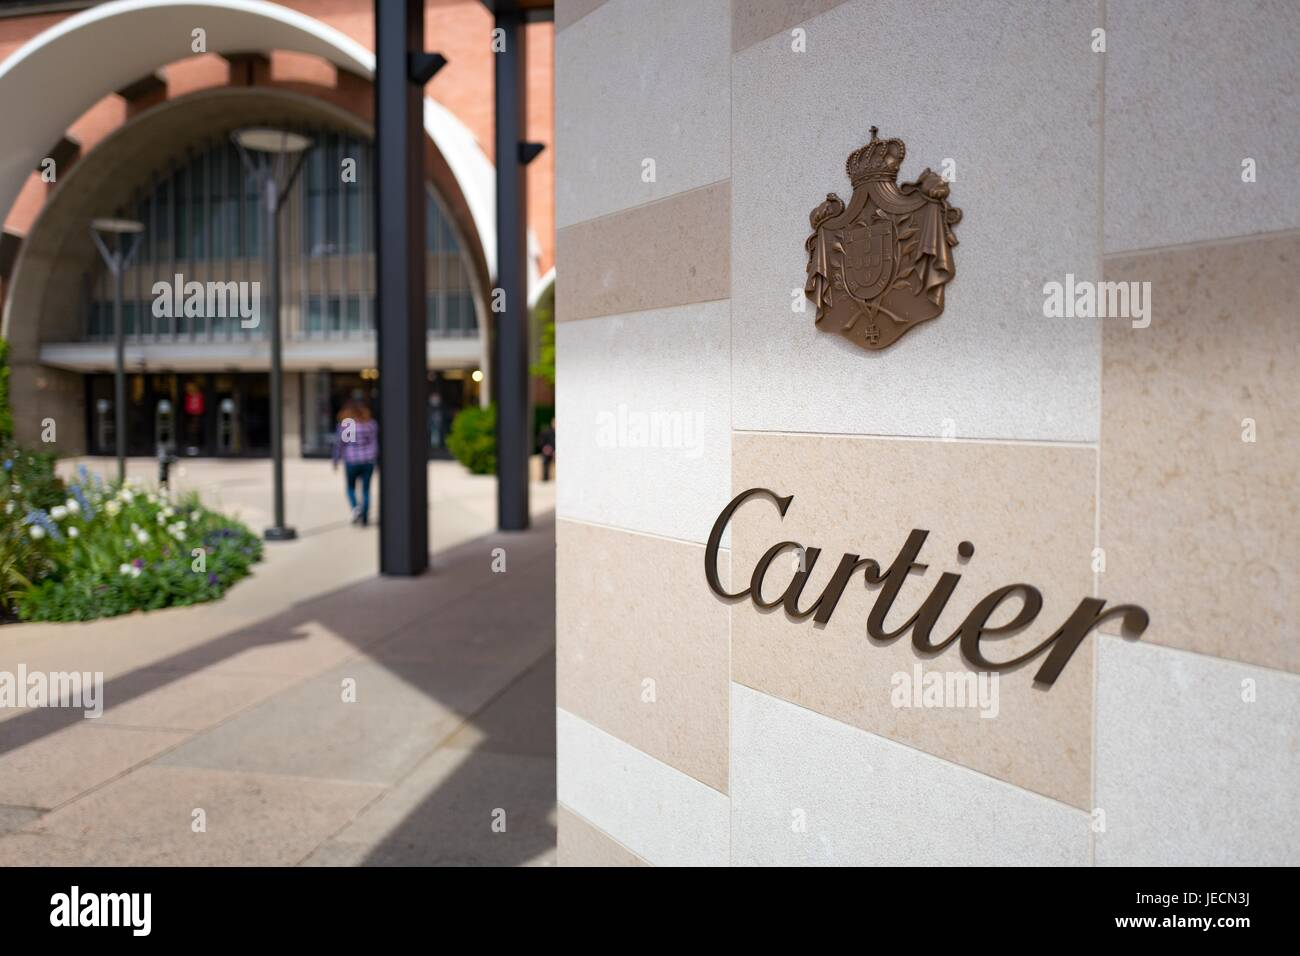 Signage for luxury clothing brand Cartier at the Stanford Shopping Center, an upscale outdoor shopping mall in the - Stock Image